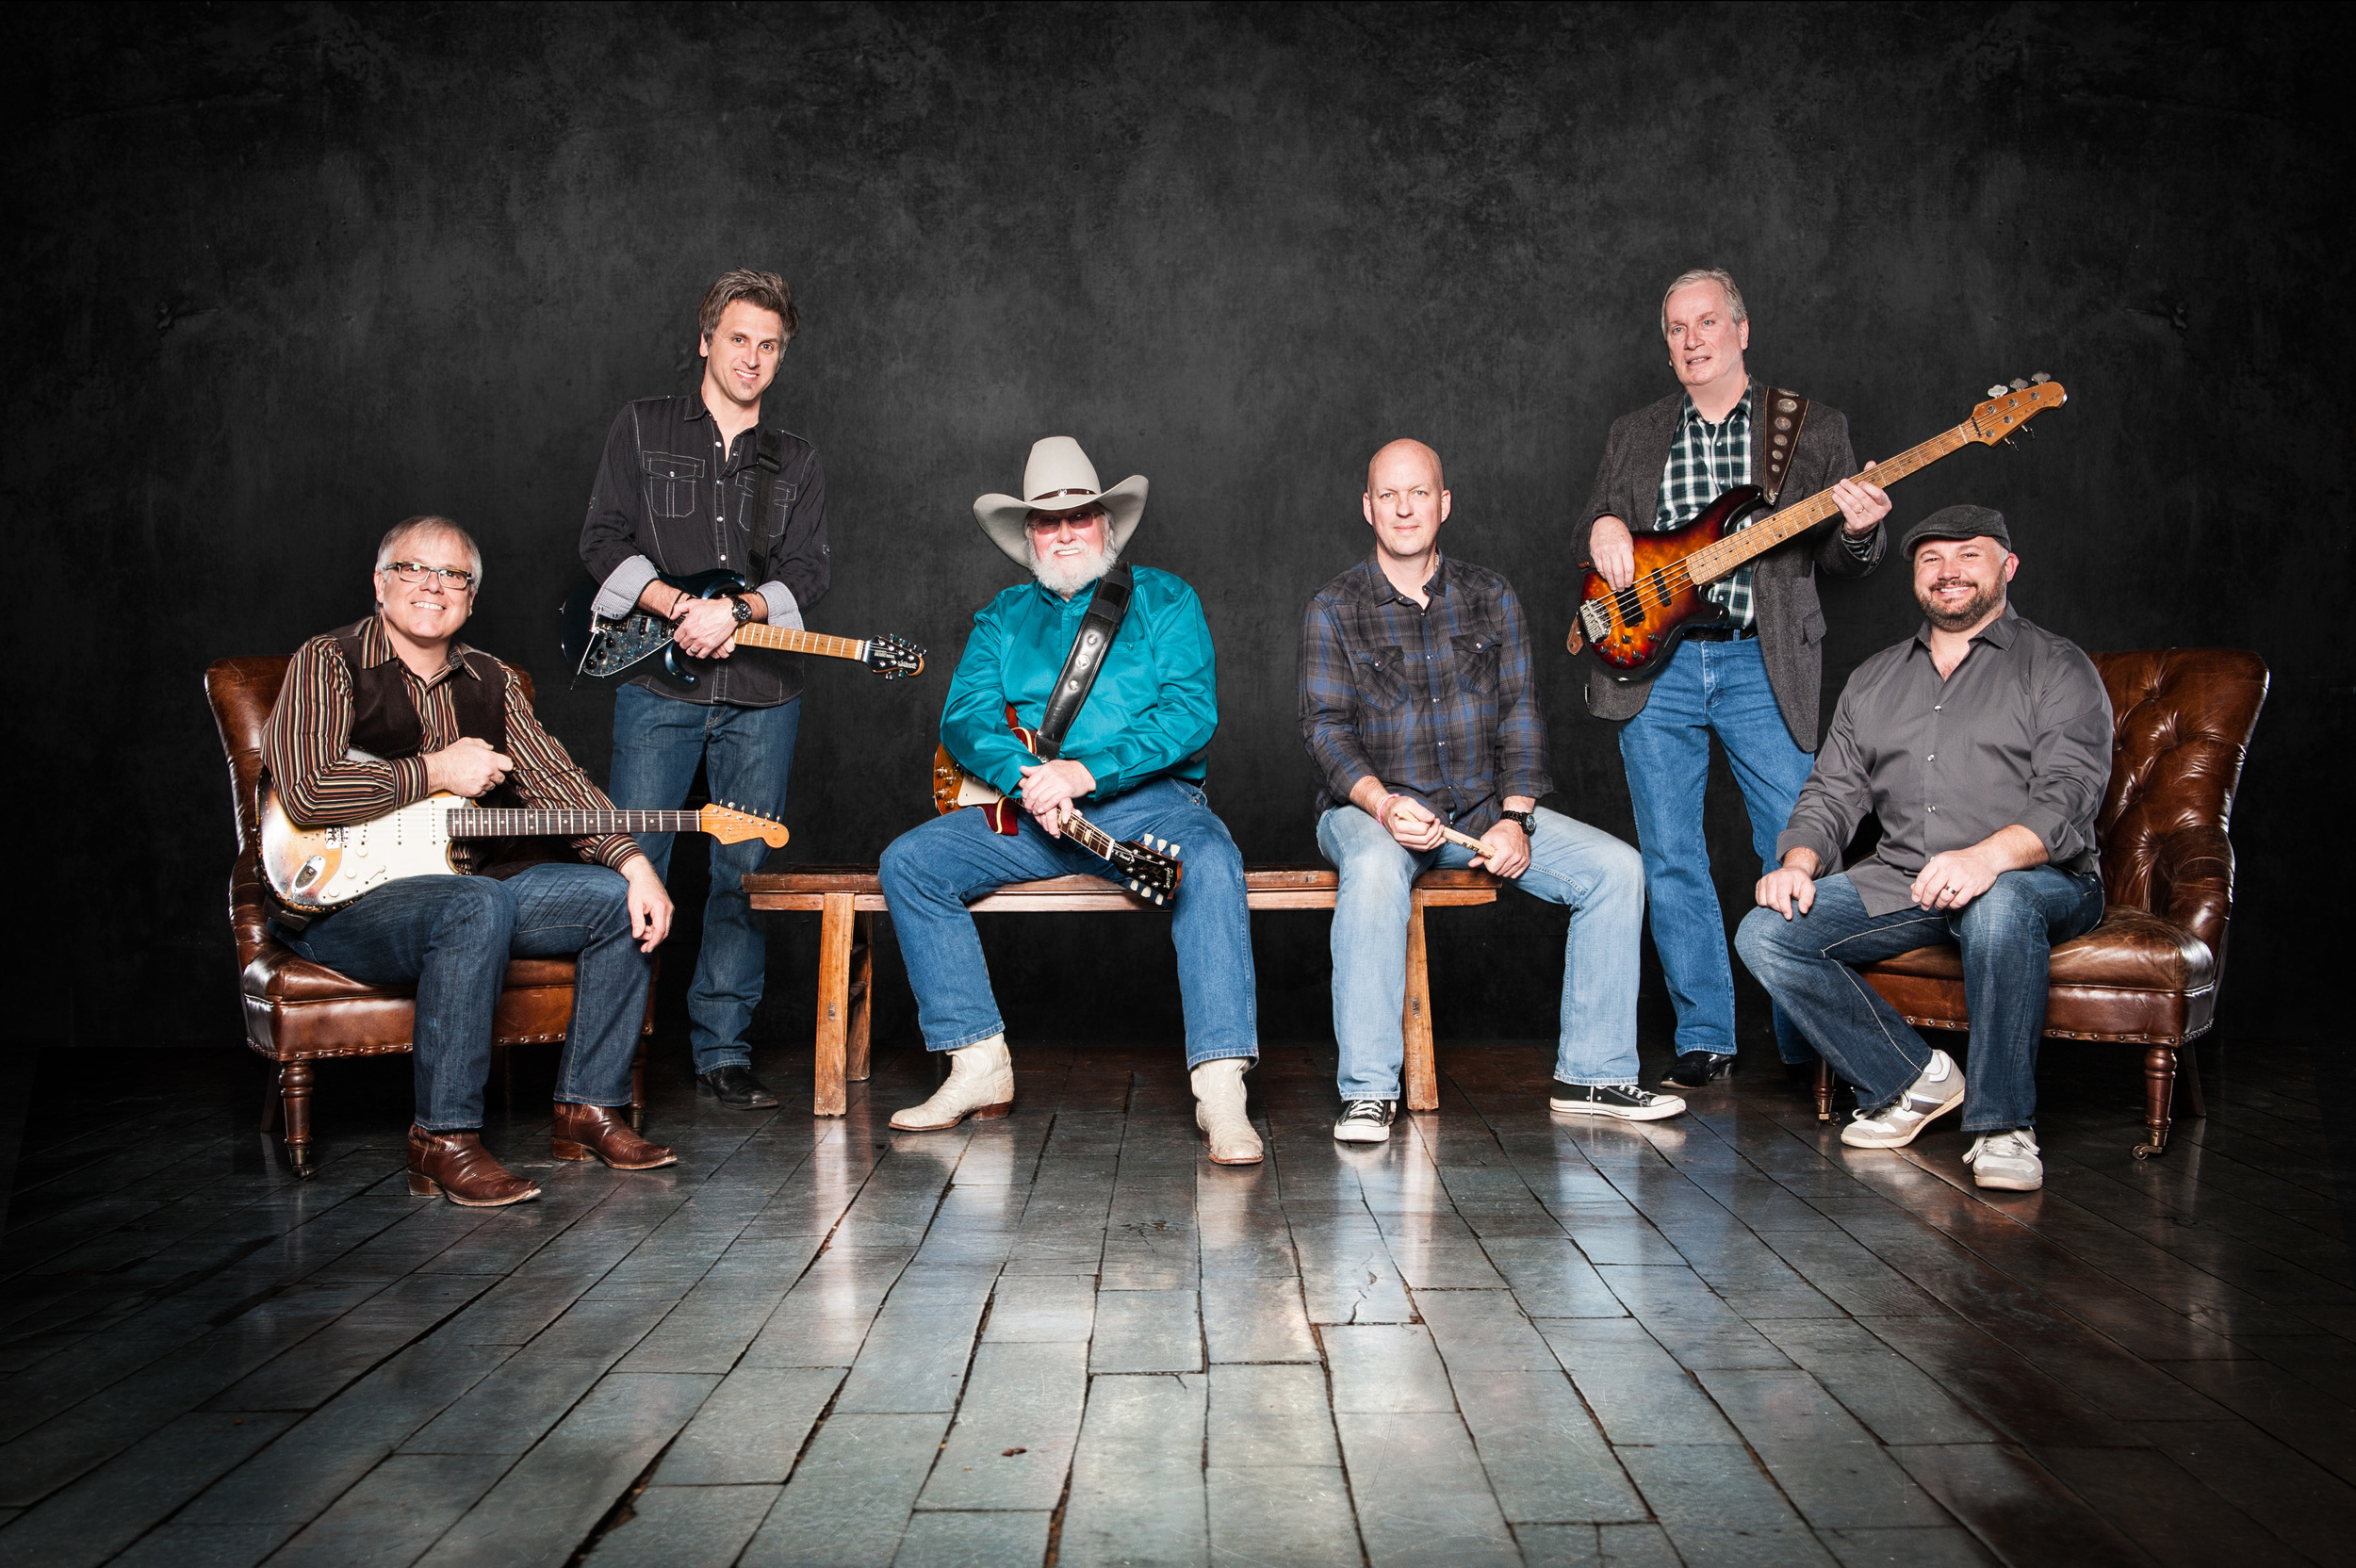 Charlie Daniels Band, Valley Forge Casino Resort, Valley Forge, King of Prussia, Casino, Country Music, Concert